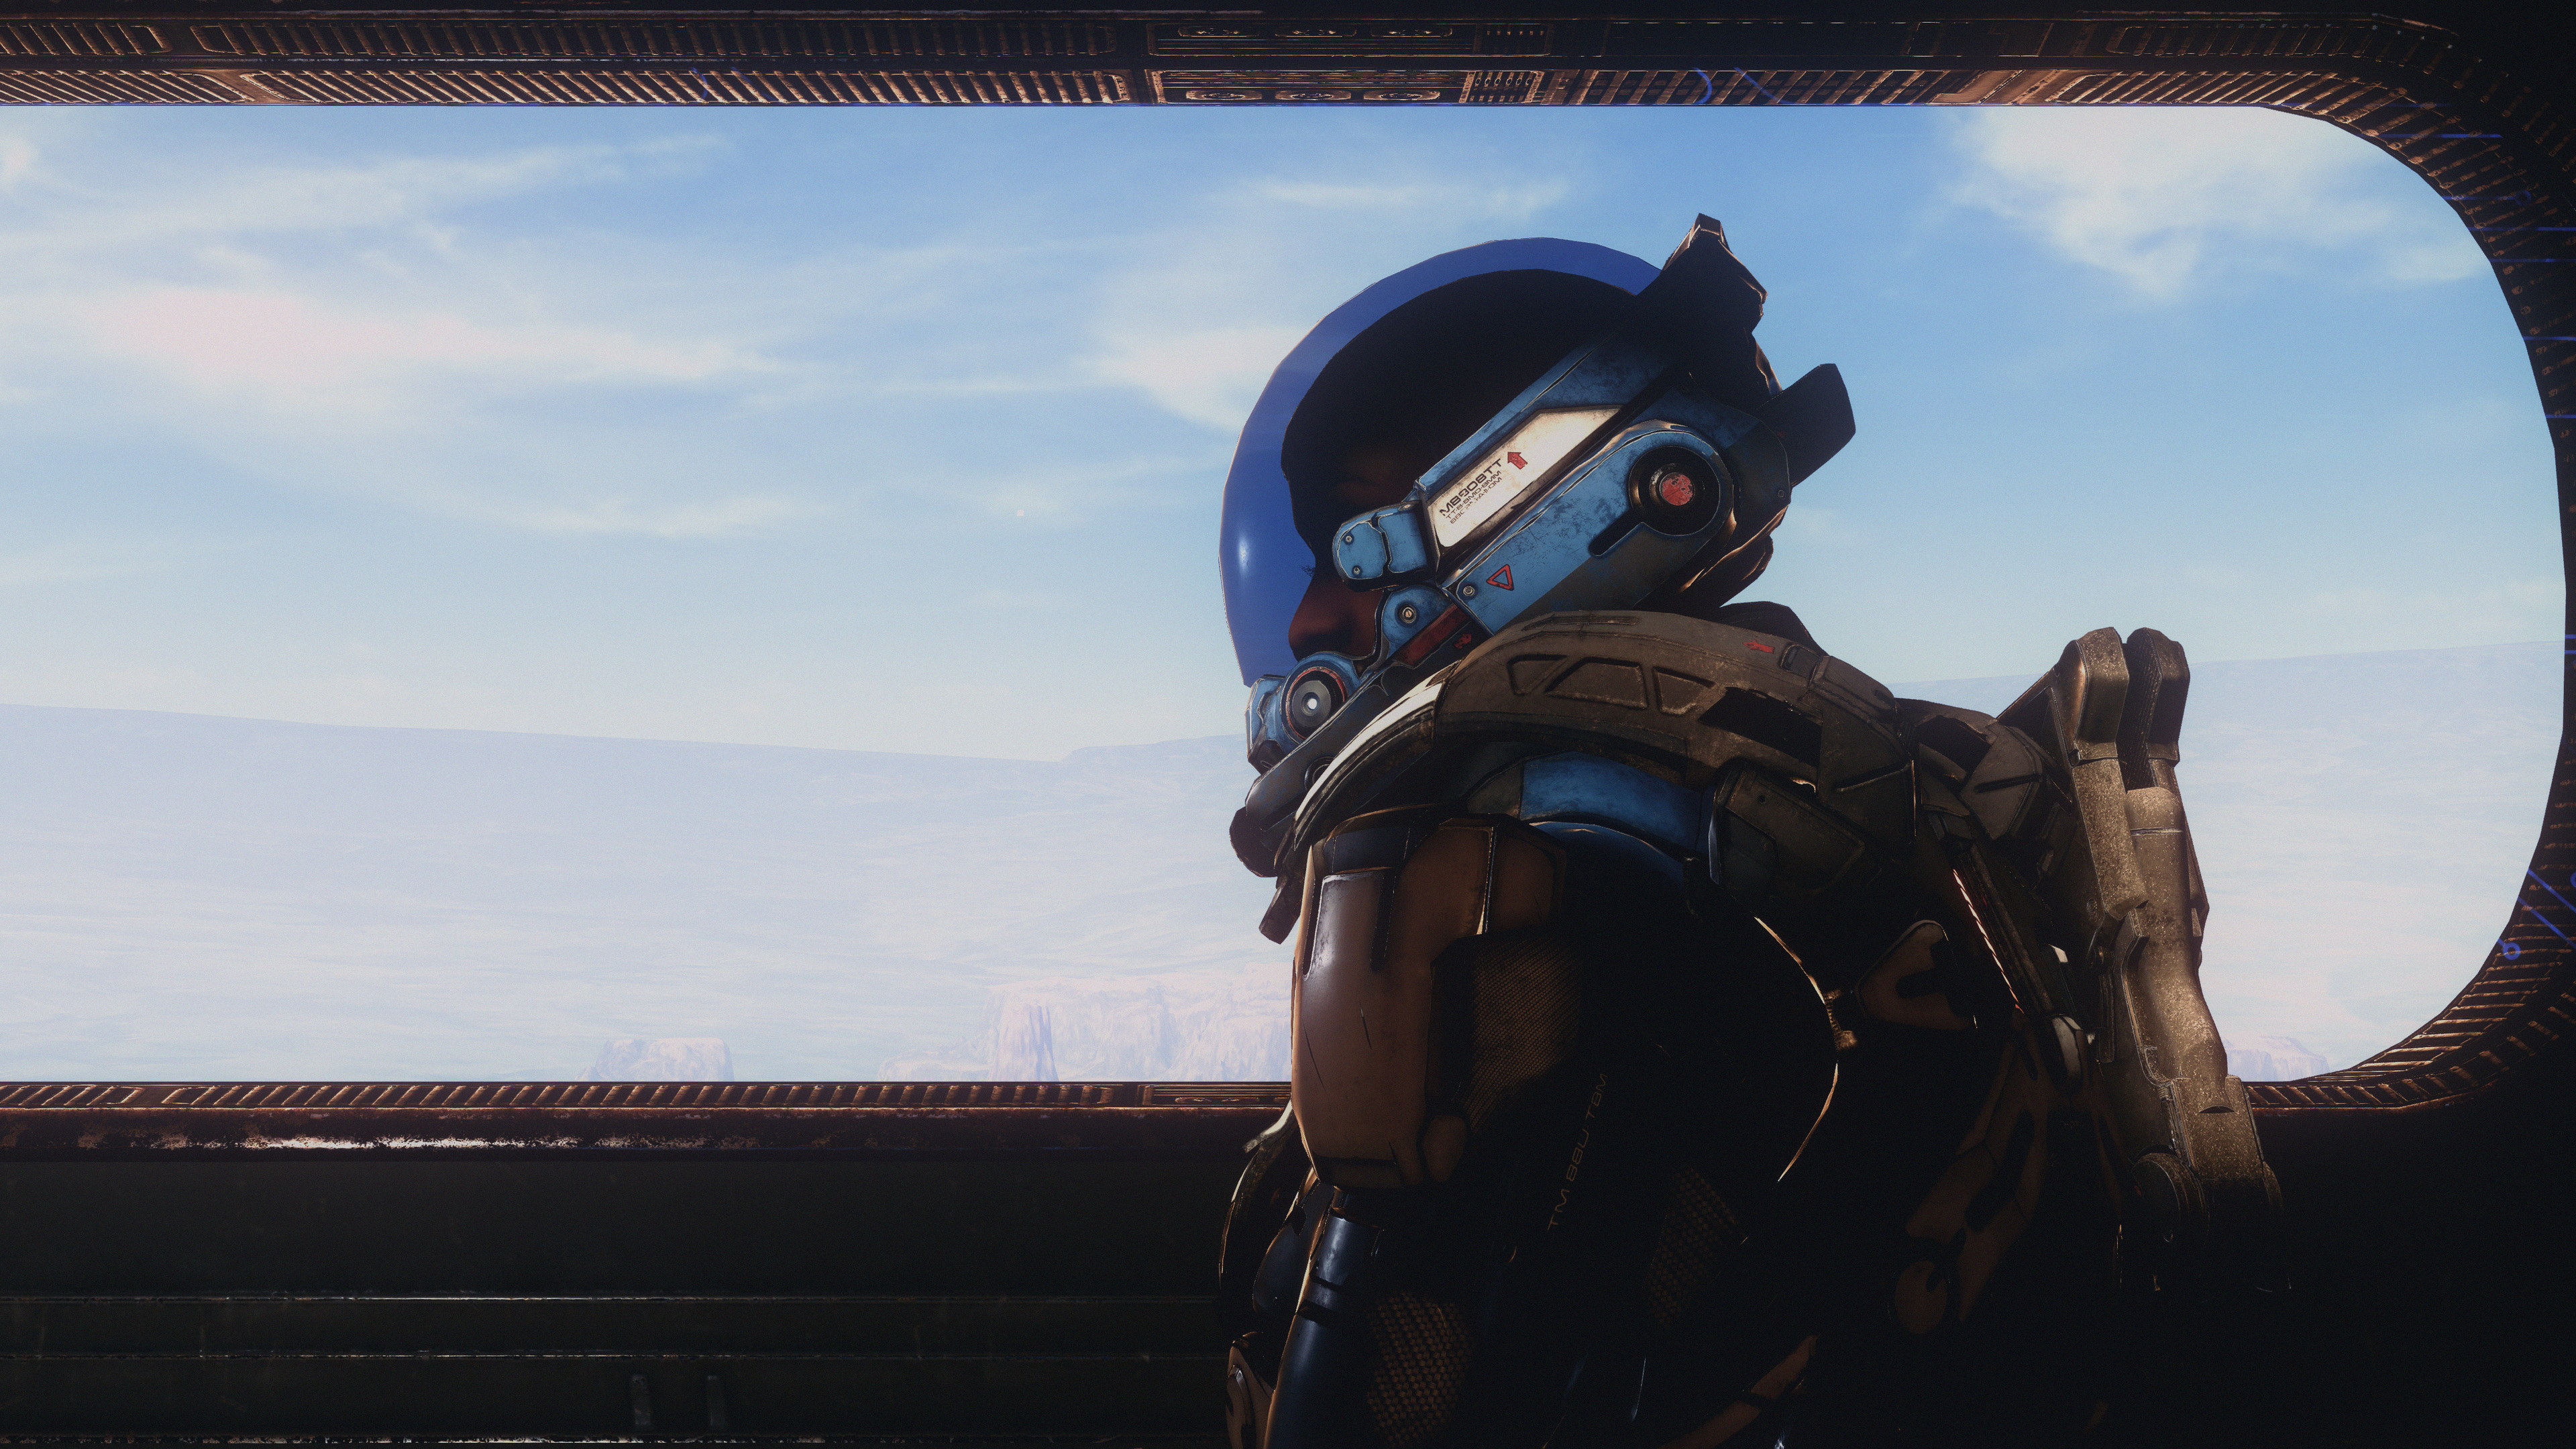 2018 mass effect andromeda 5k 1537690321 - 2018 Mass Effect Andromeda 5k - xbox games wallpapers, ps games wallpapers, pc games wallpapers, mass effect andromeda wallpapers, hd-wallpapers, games wallpapers, 5k wallpapers, 4k-wallpapers, 2018 games wallpapers